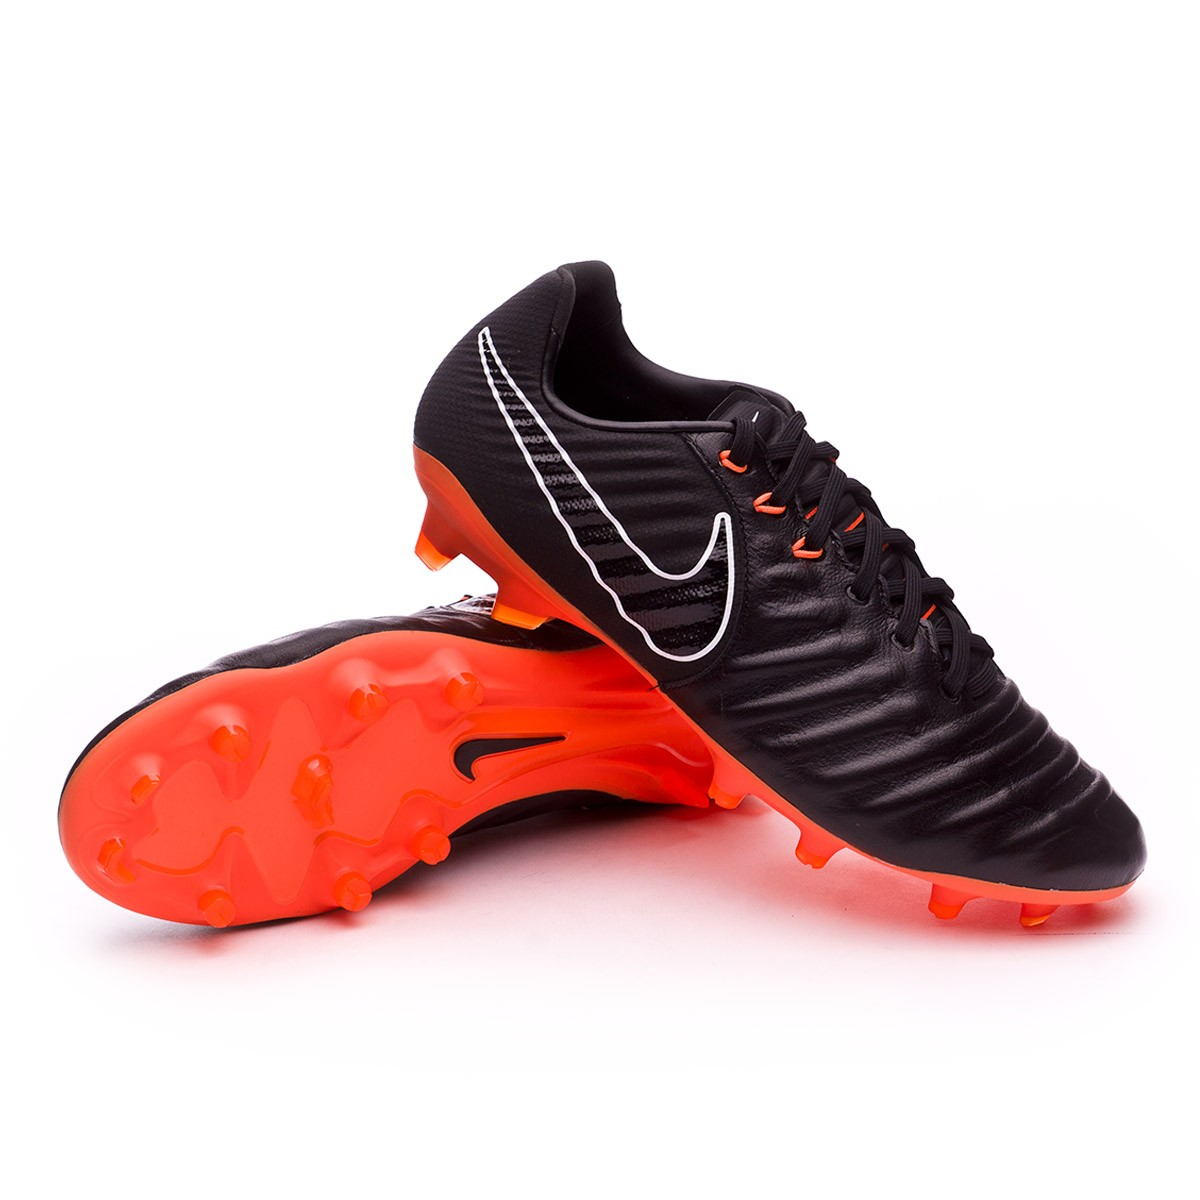 9925f89bd Football Boots Nike Tiempo Legend VII Pro FG Black-Total orange ...